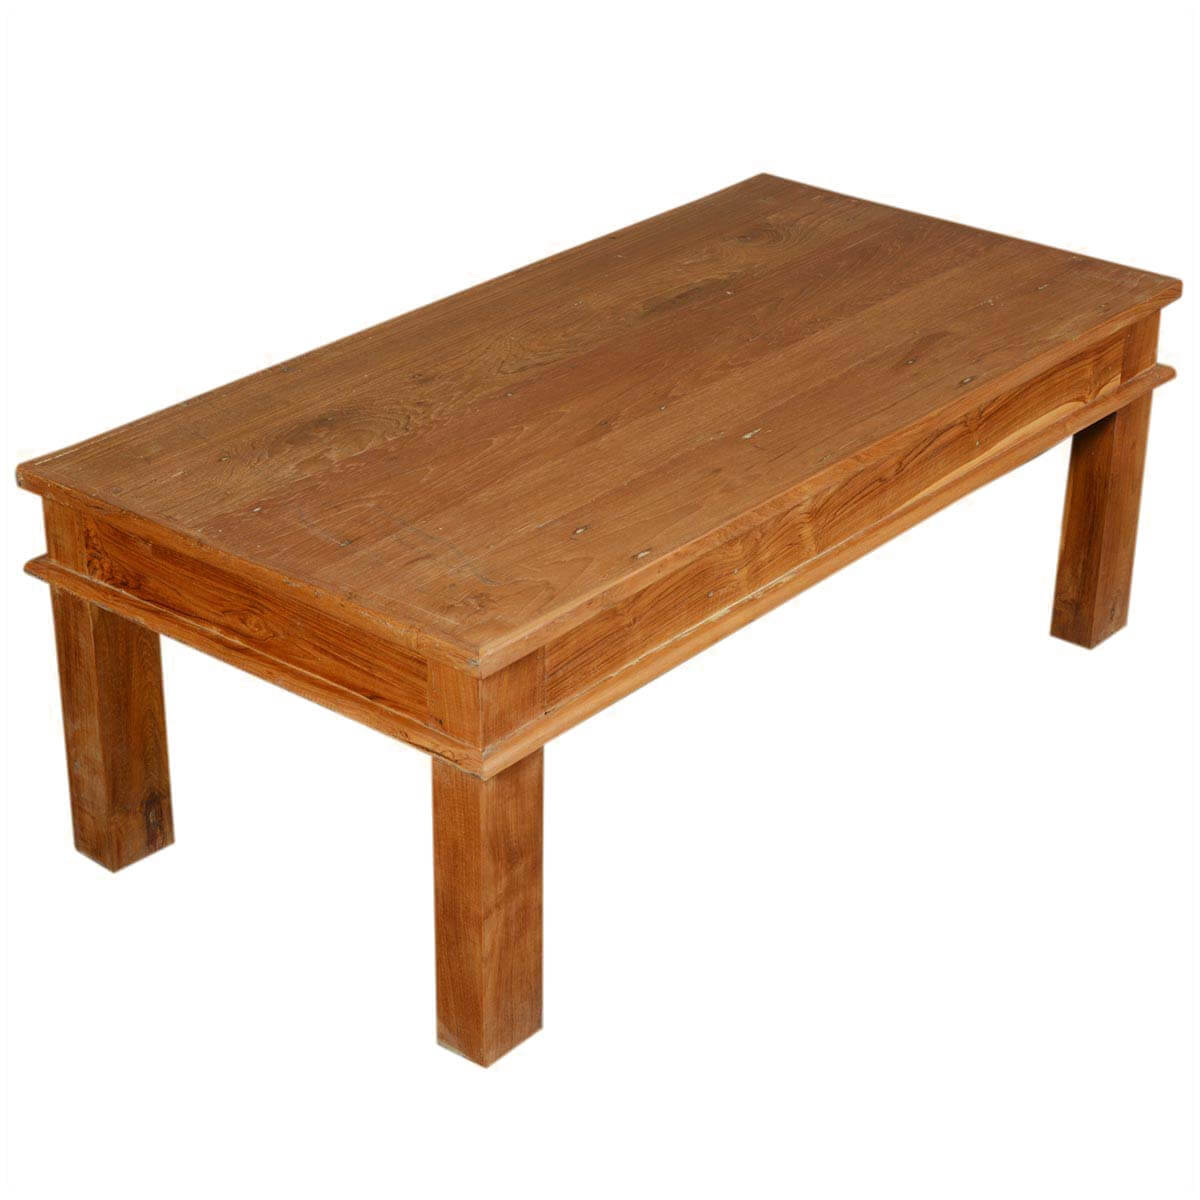 48 solid teak wood danish rustic coffee table for Solid wood coffee table